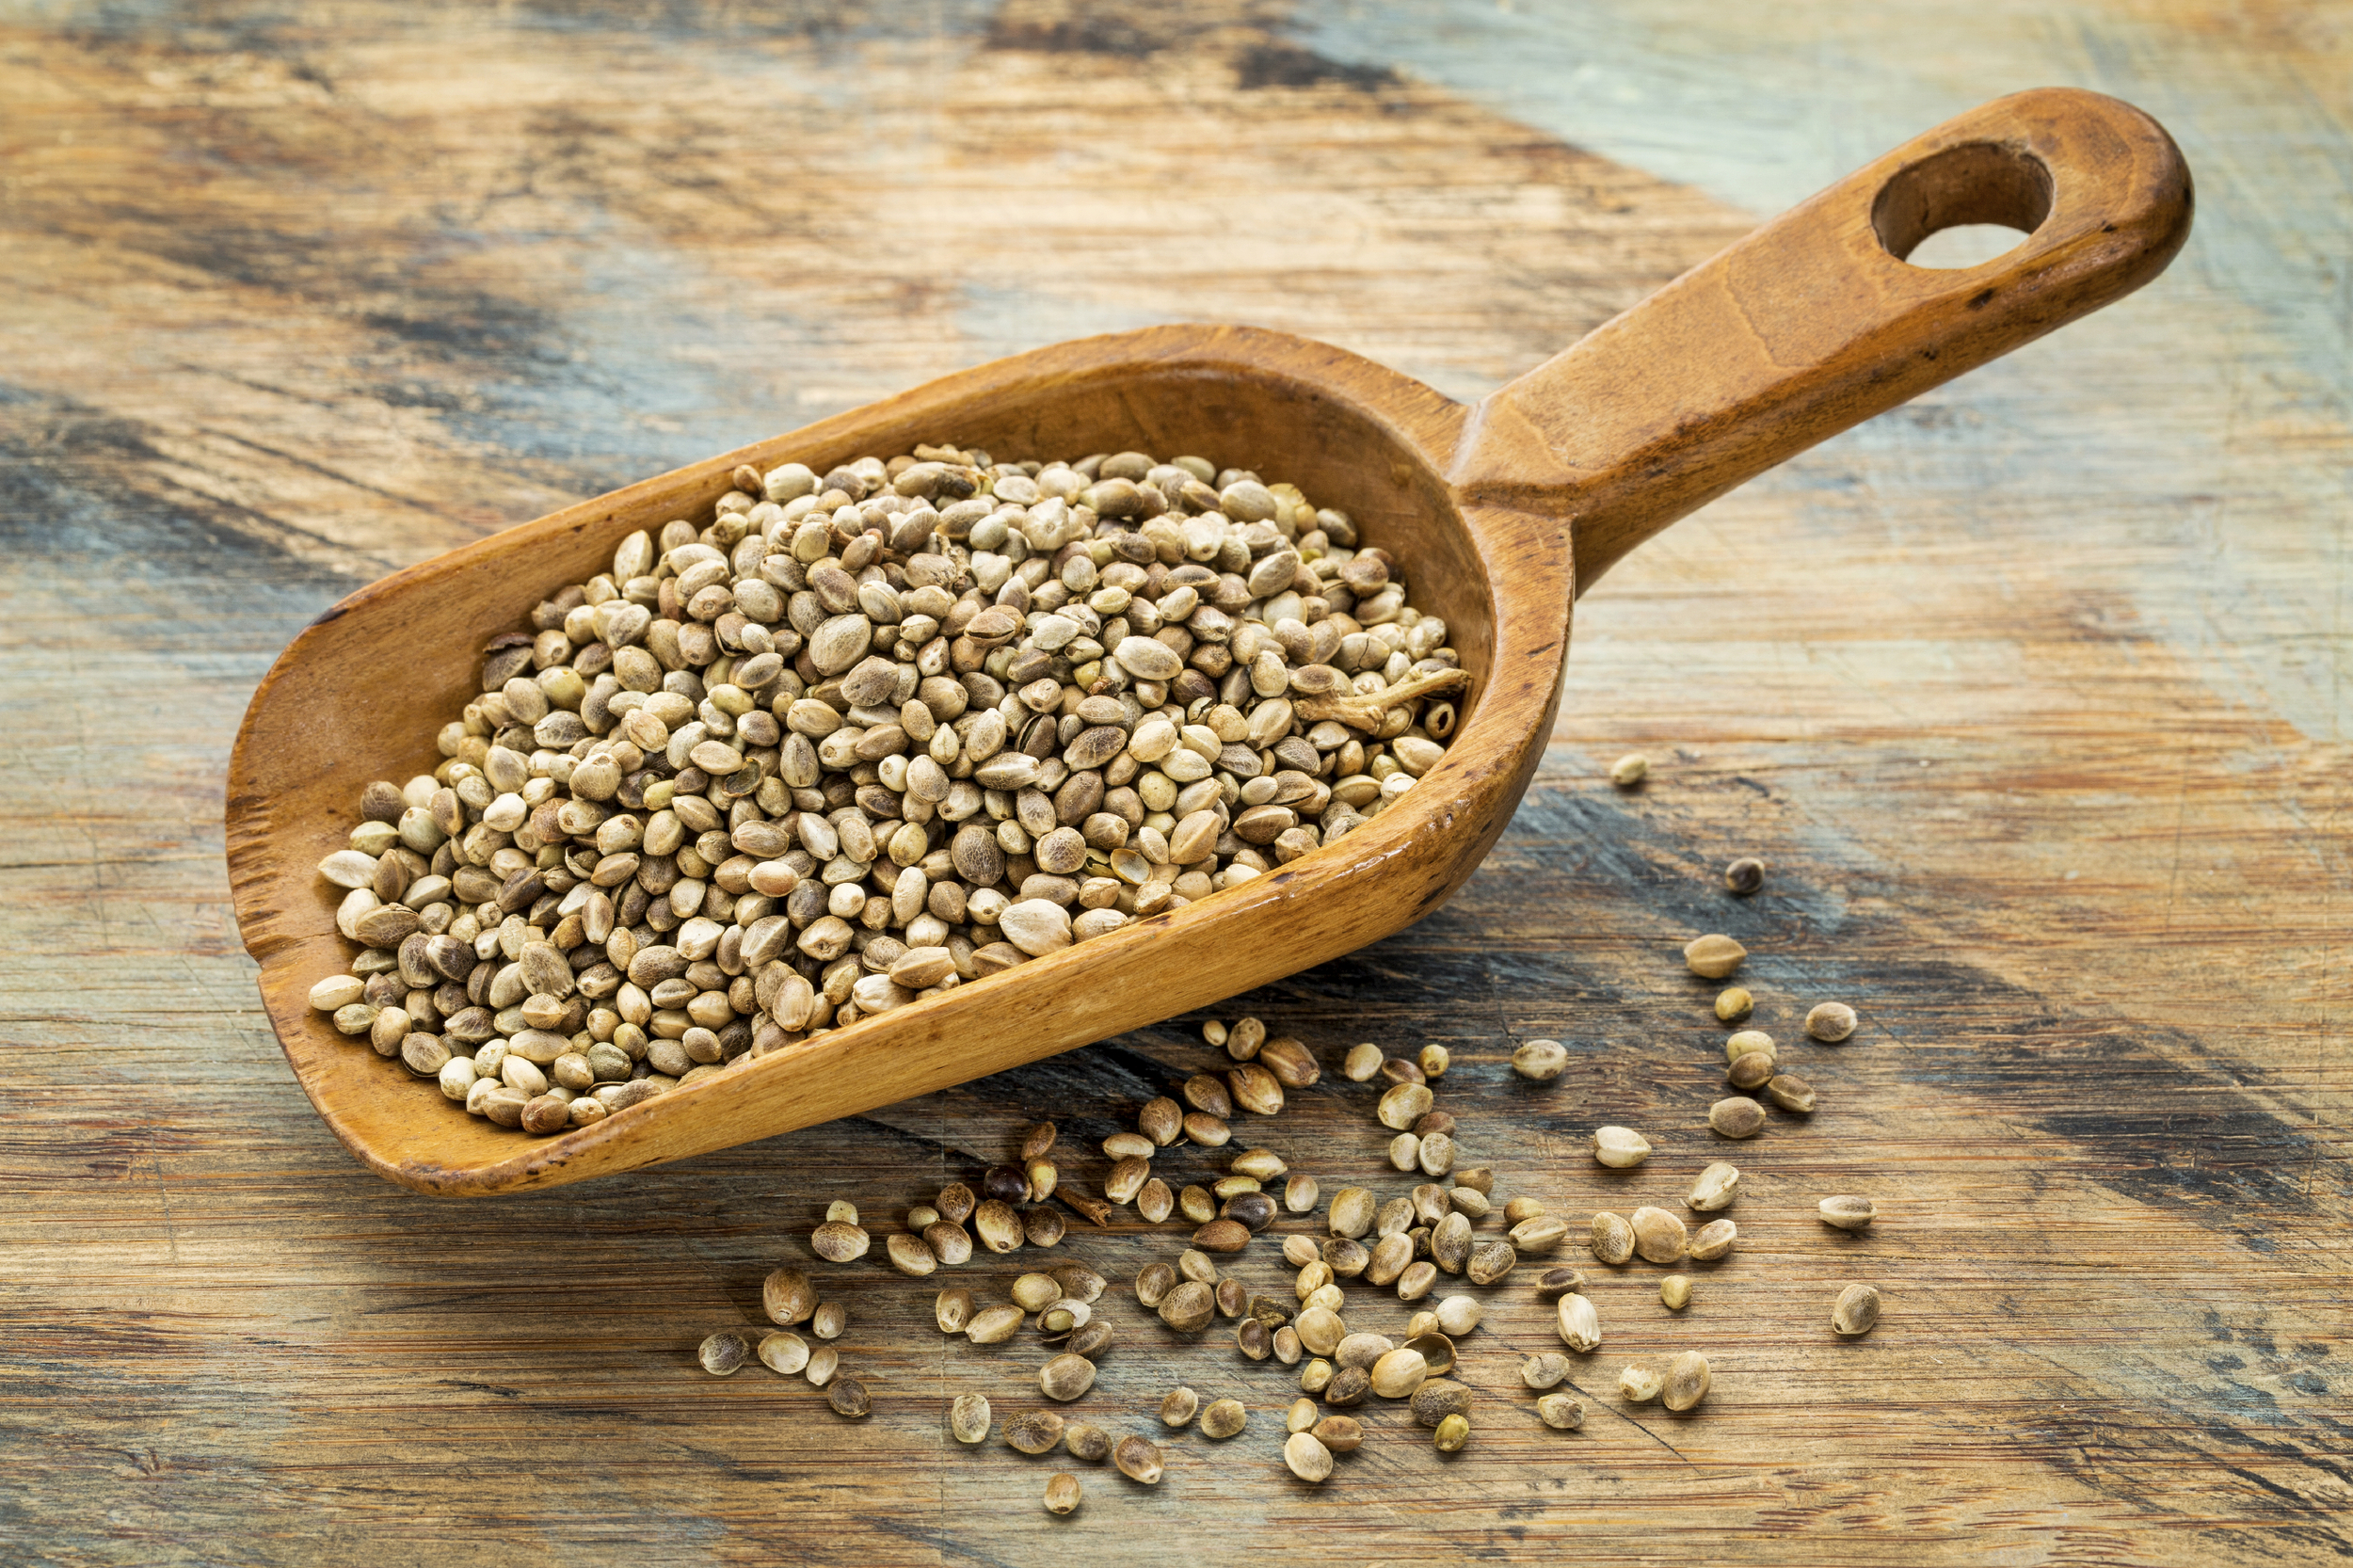 Hemp seeds and oil are a rich source of omega 3 fatty acids.